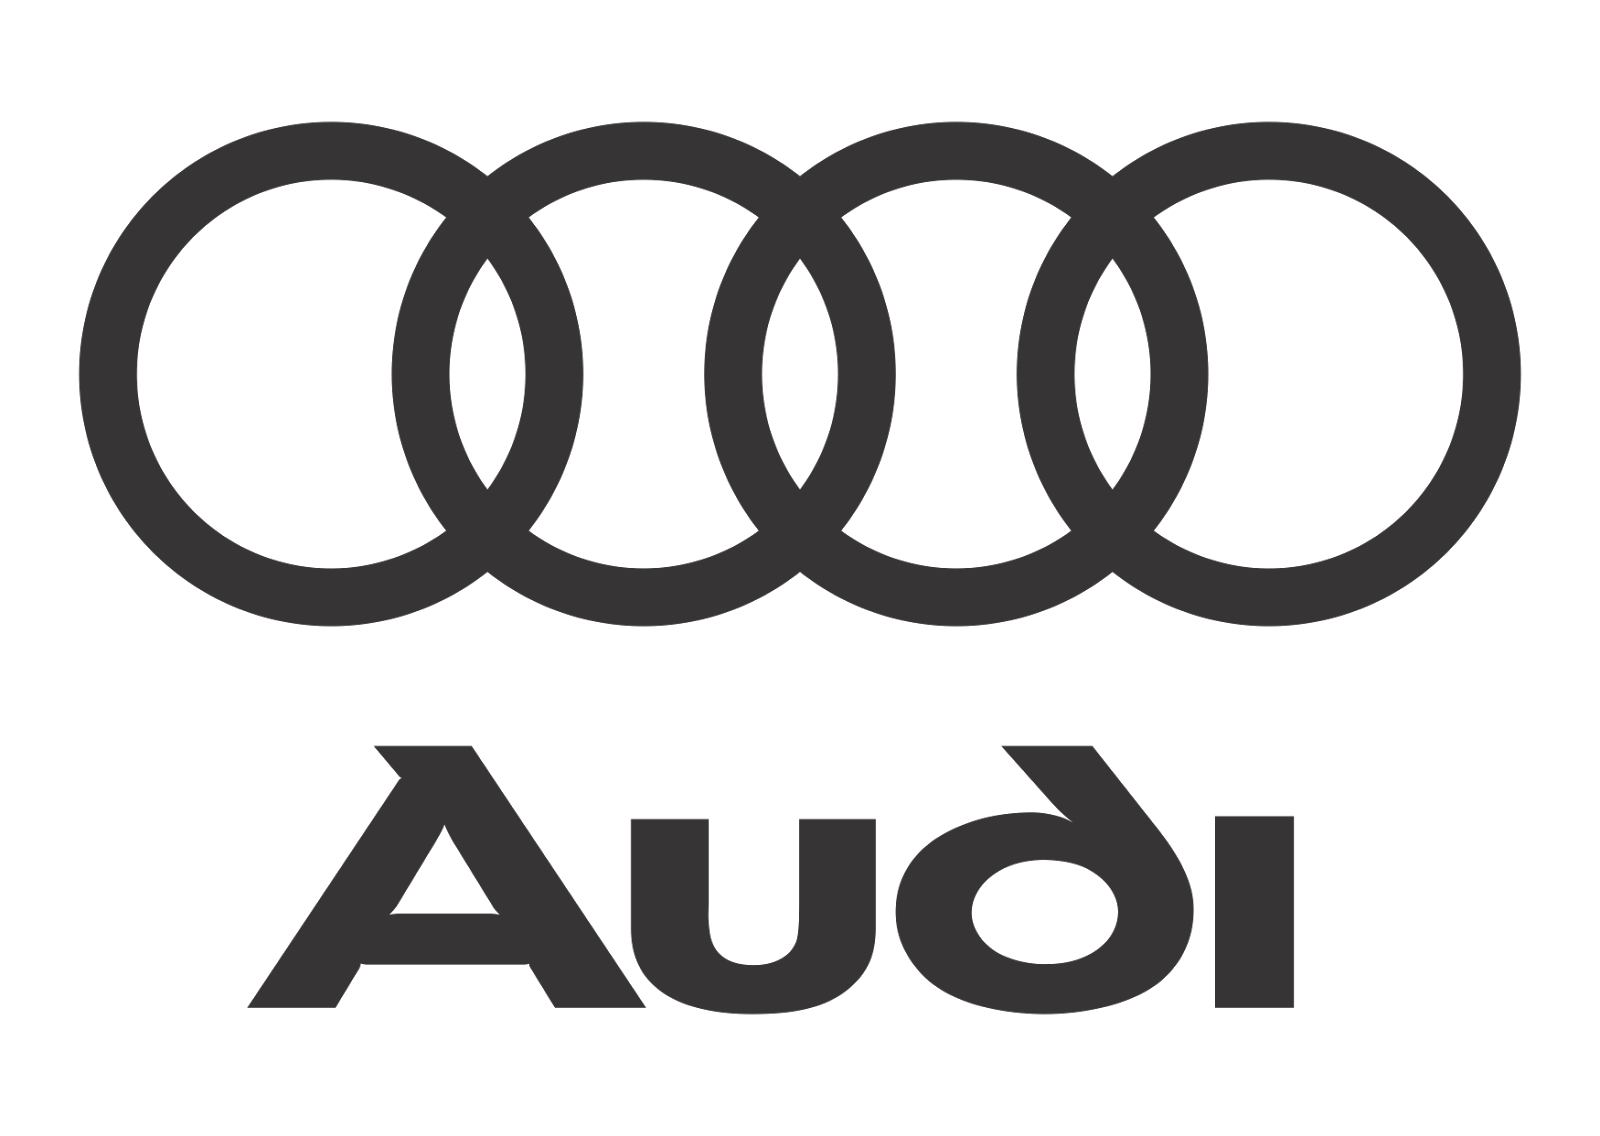 R$ png black and white. Audi logo vector download